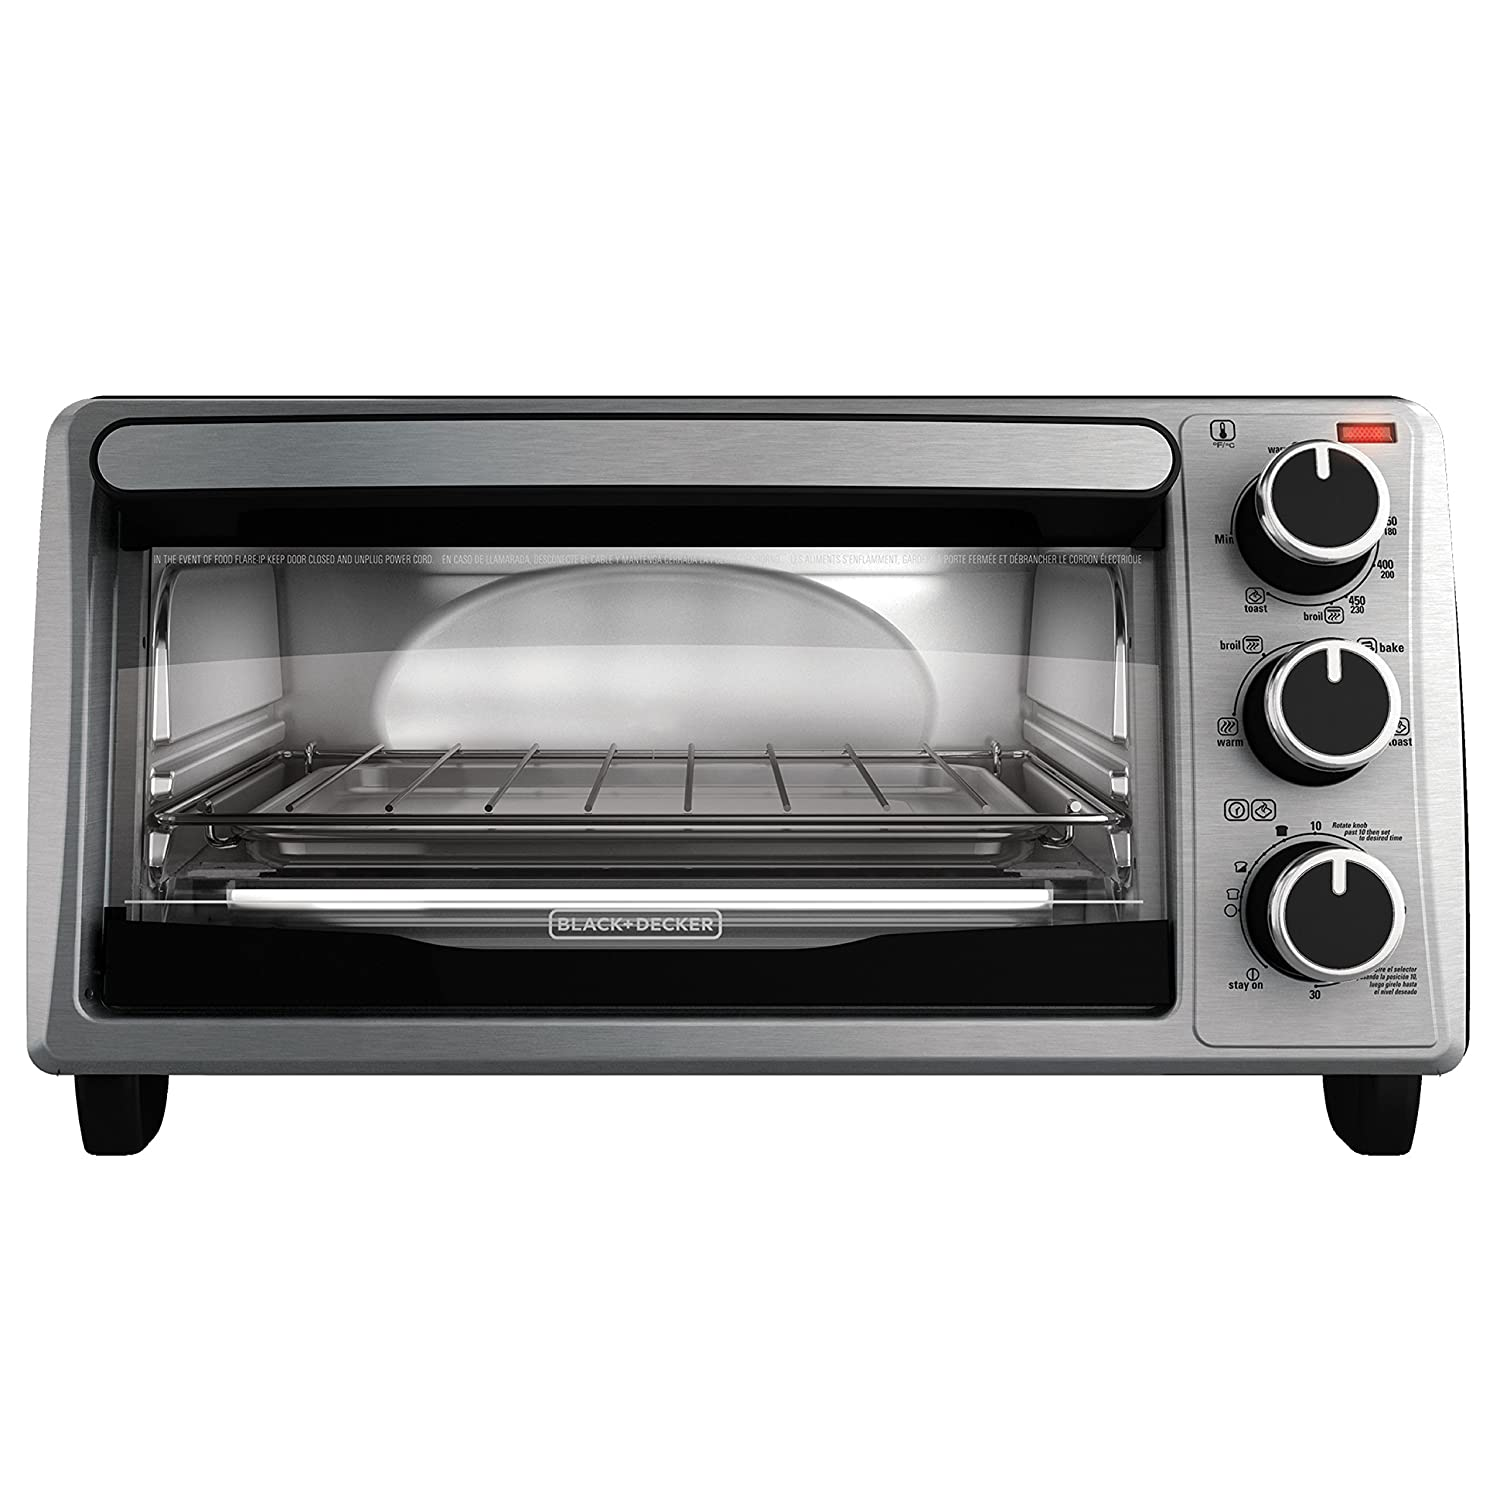 com countertop oven beach hamilton walmart convection toaster over ip model kitchen